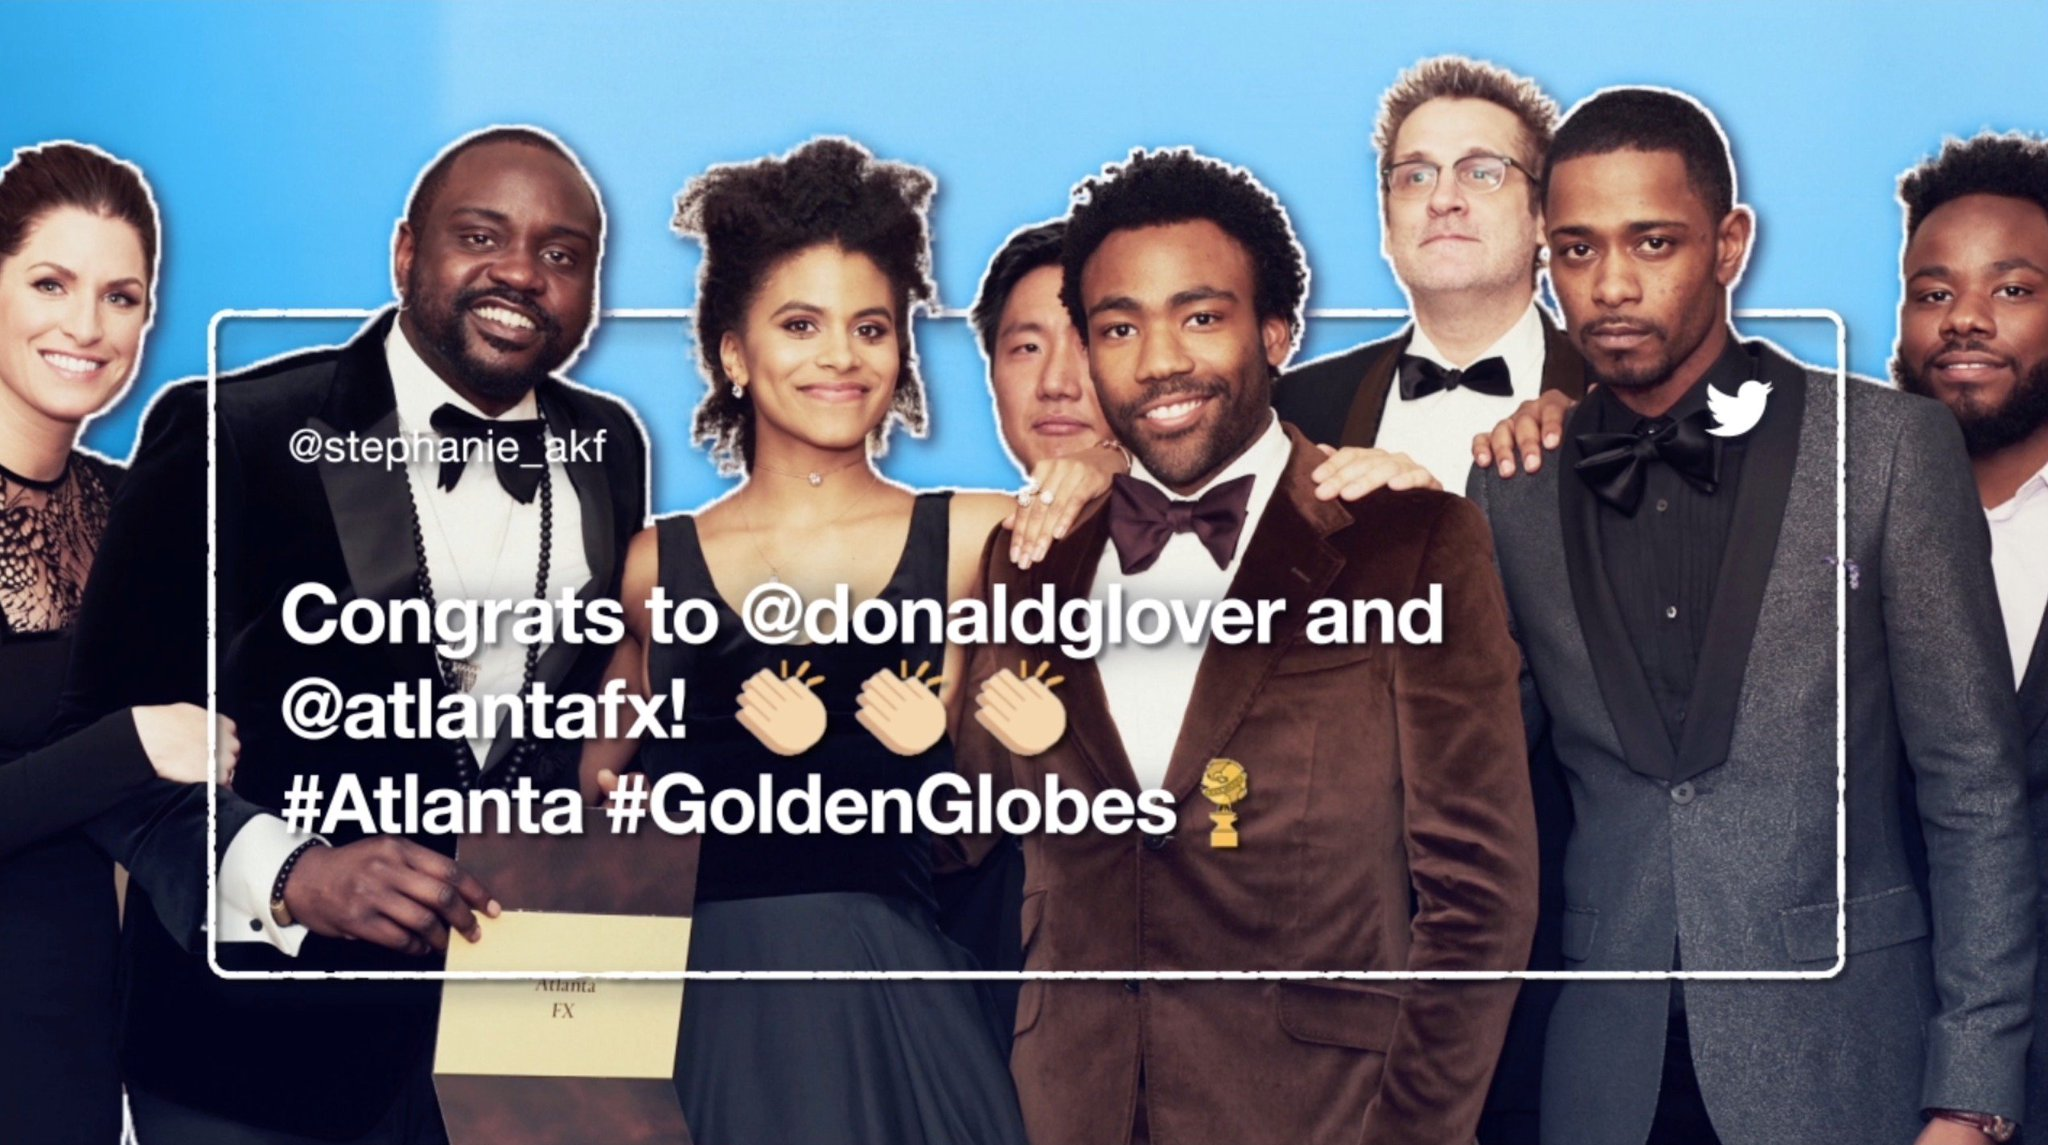 They walked. You talked.  Check out the highlights from last night's #GoldenGlobes https://t.co/rPhcjwPbHd